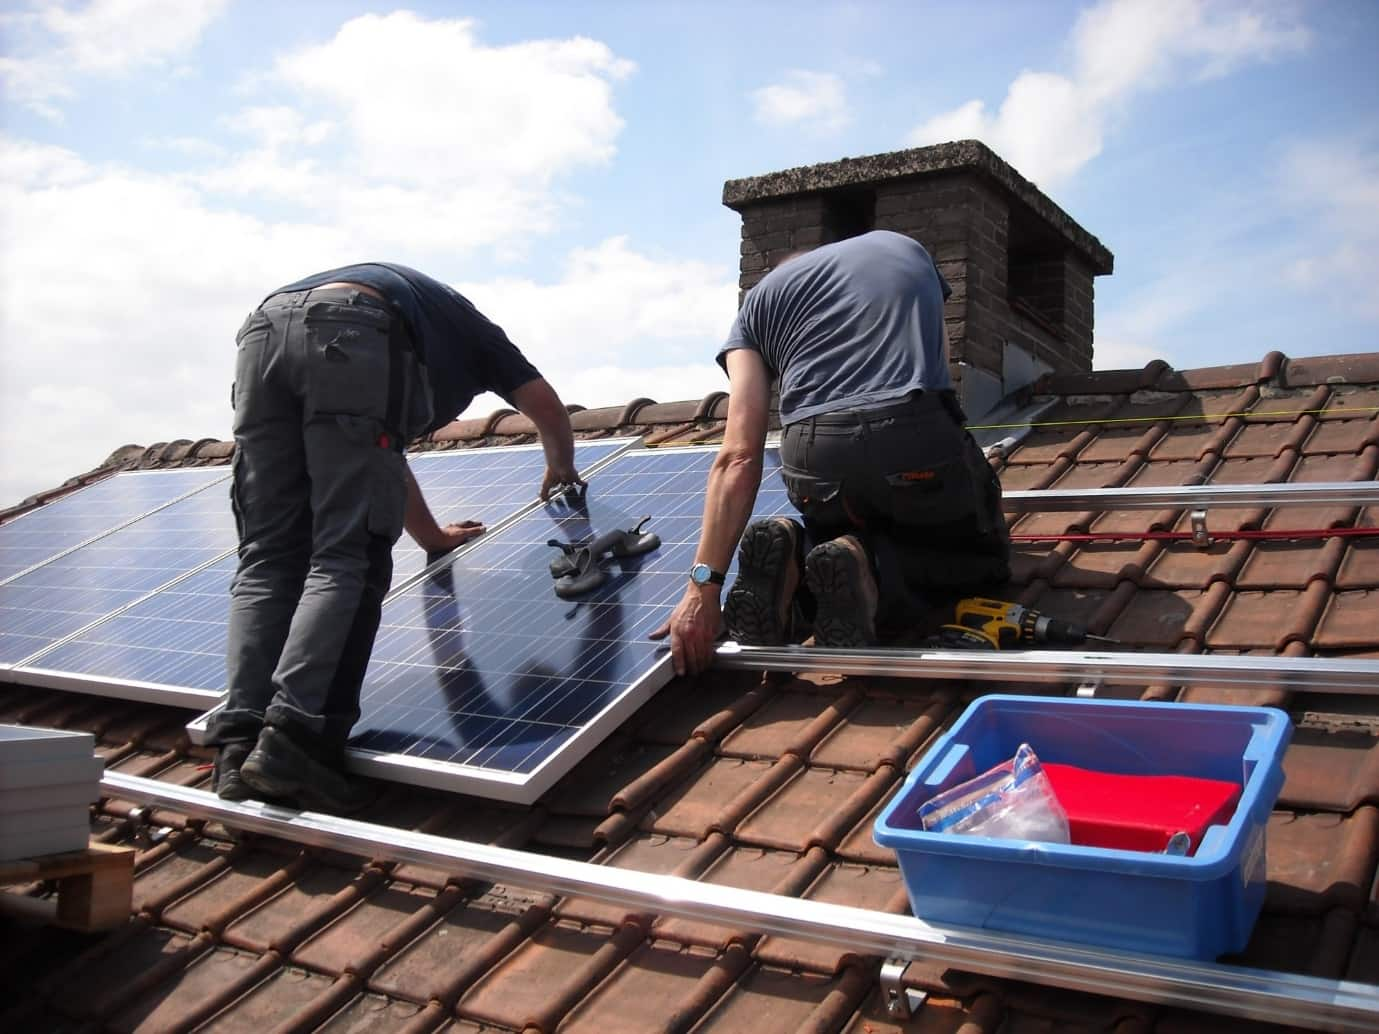 Breaking Boundaries: Future-Proof Your House with Solar Panels. Workers installing solar panels at the roof on special guides